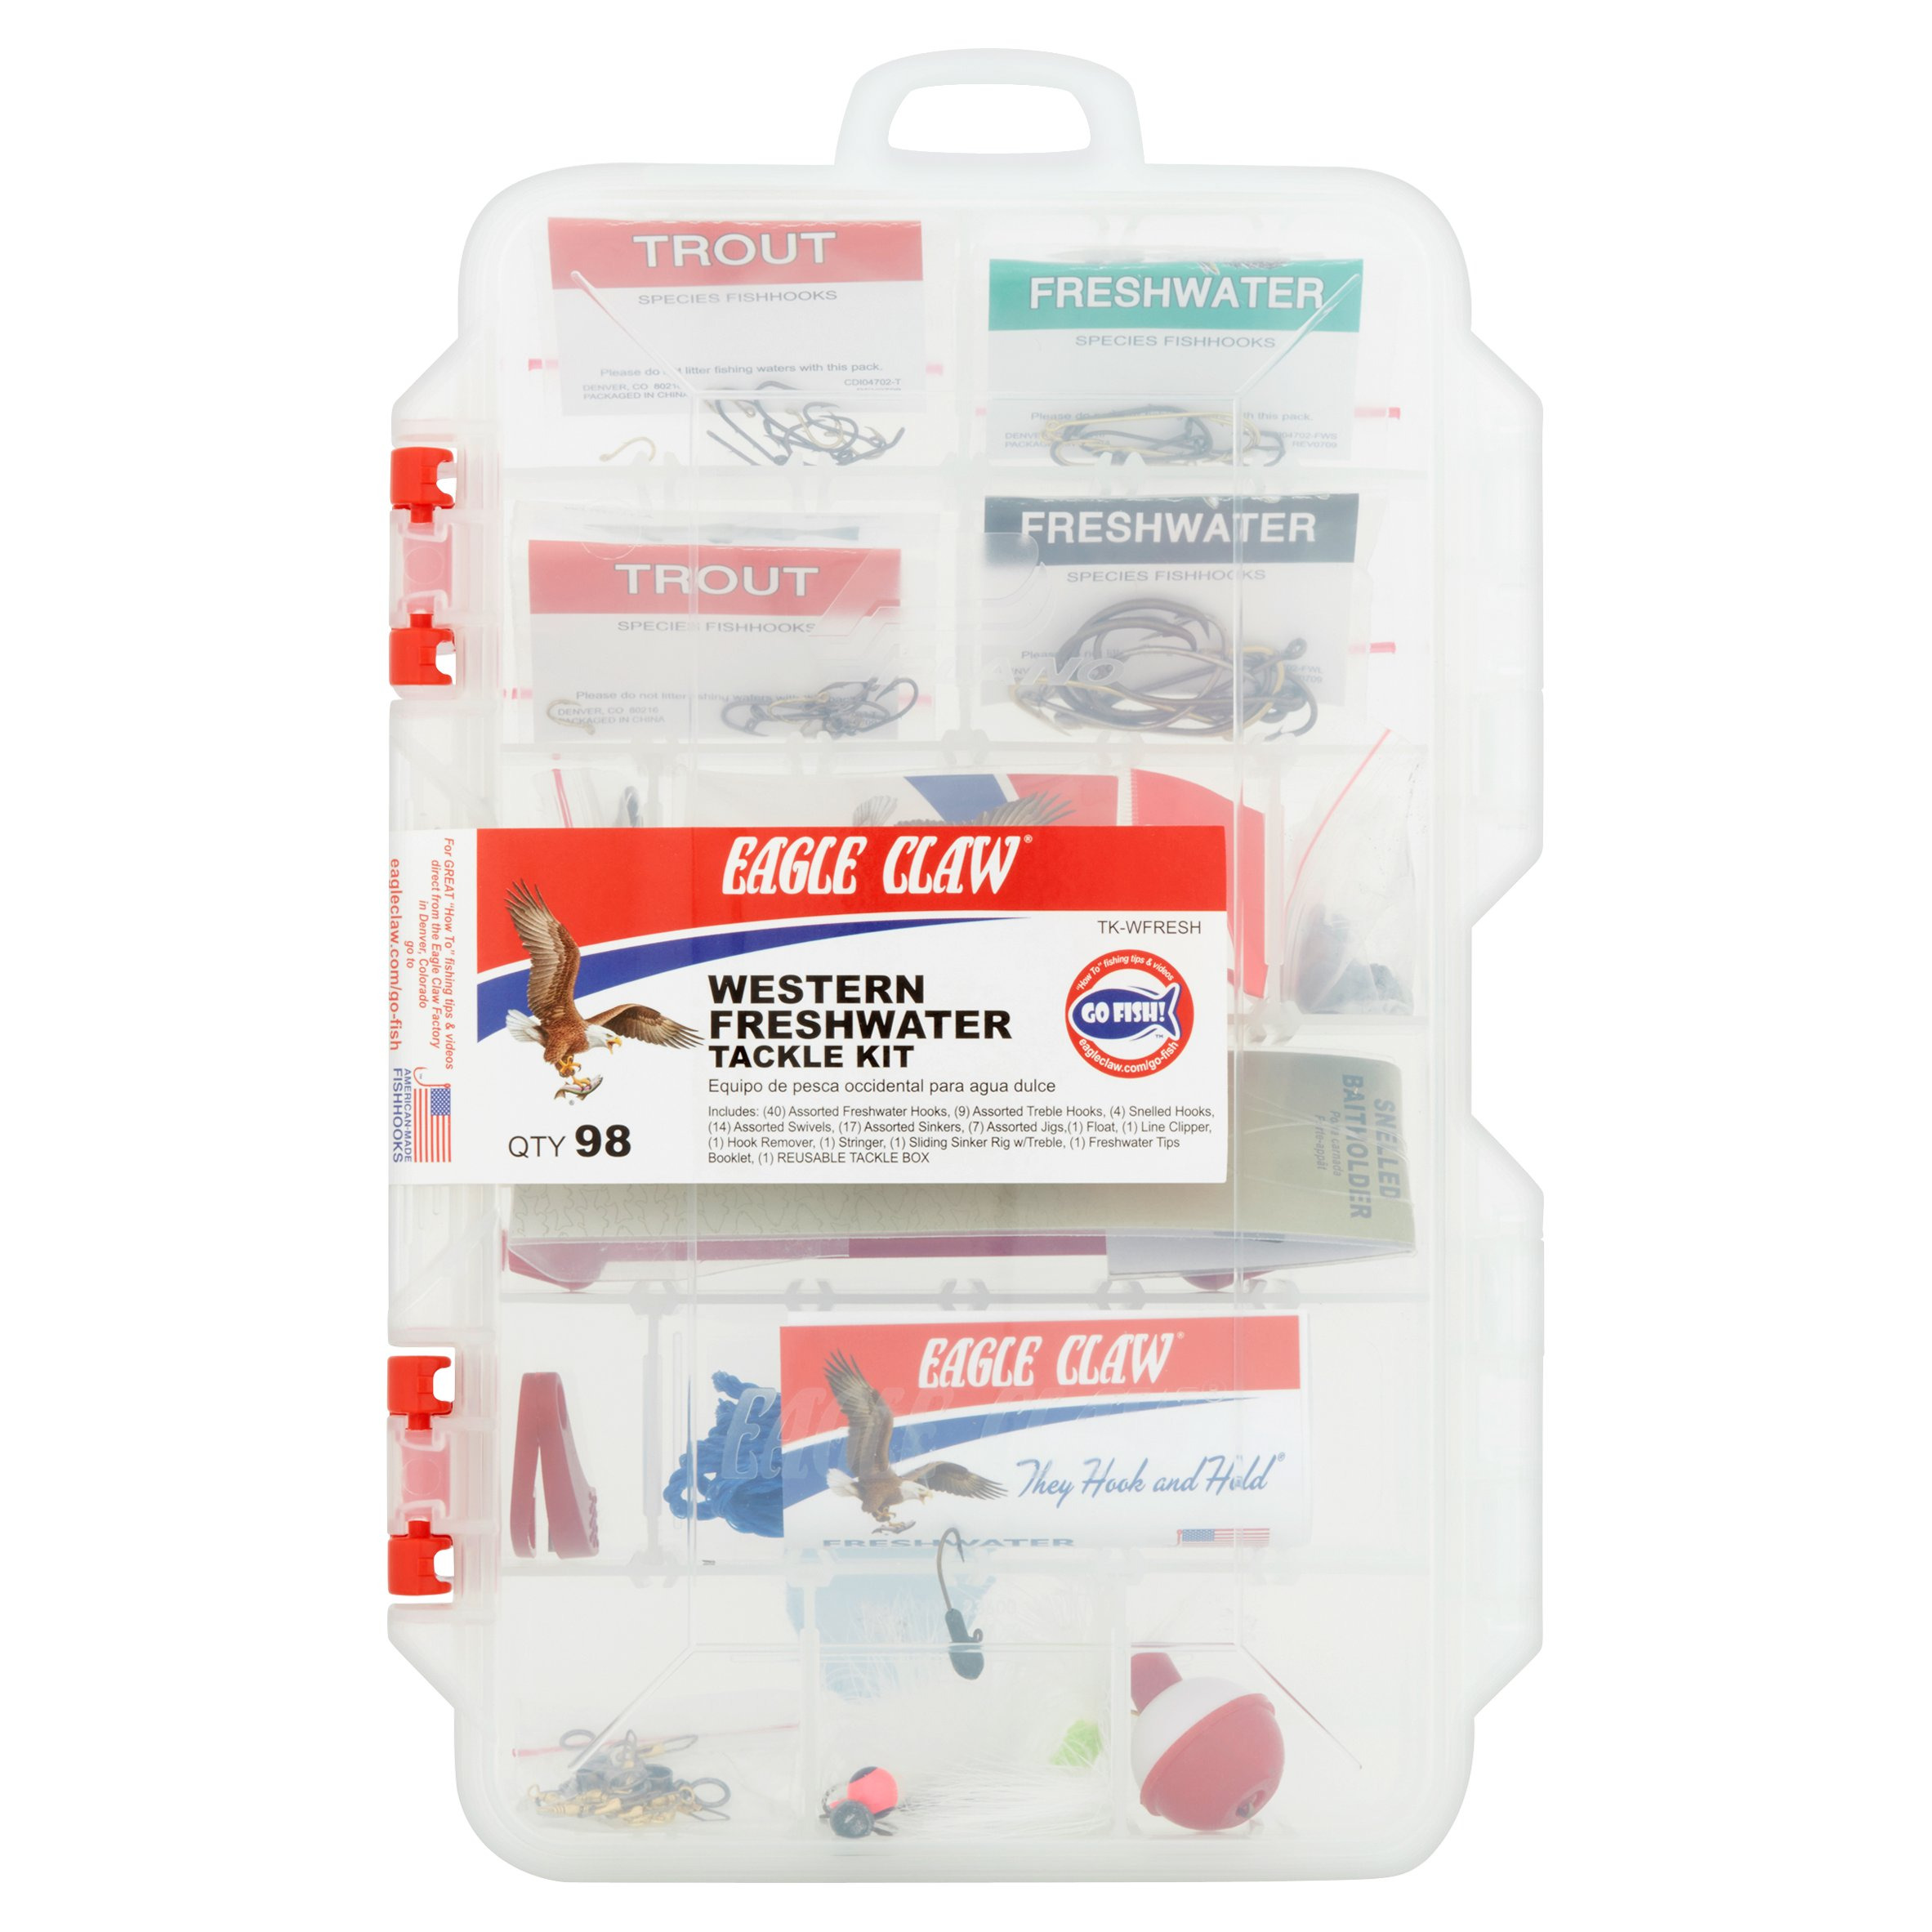 Eagle Claw Western Freshwater Tackle Kit, 98 count